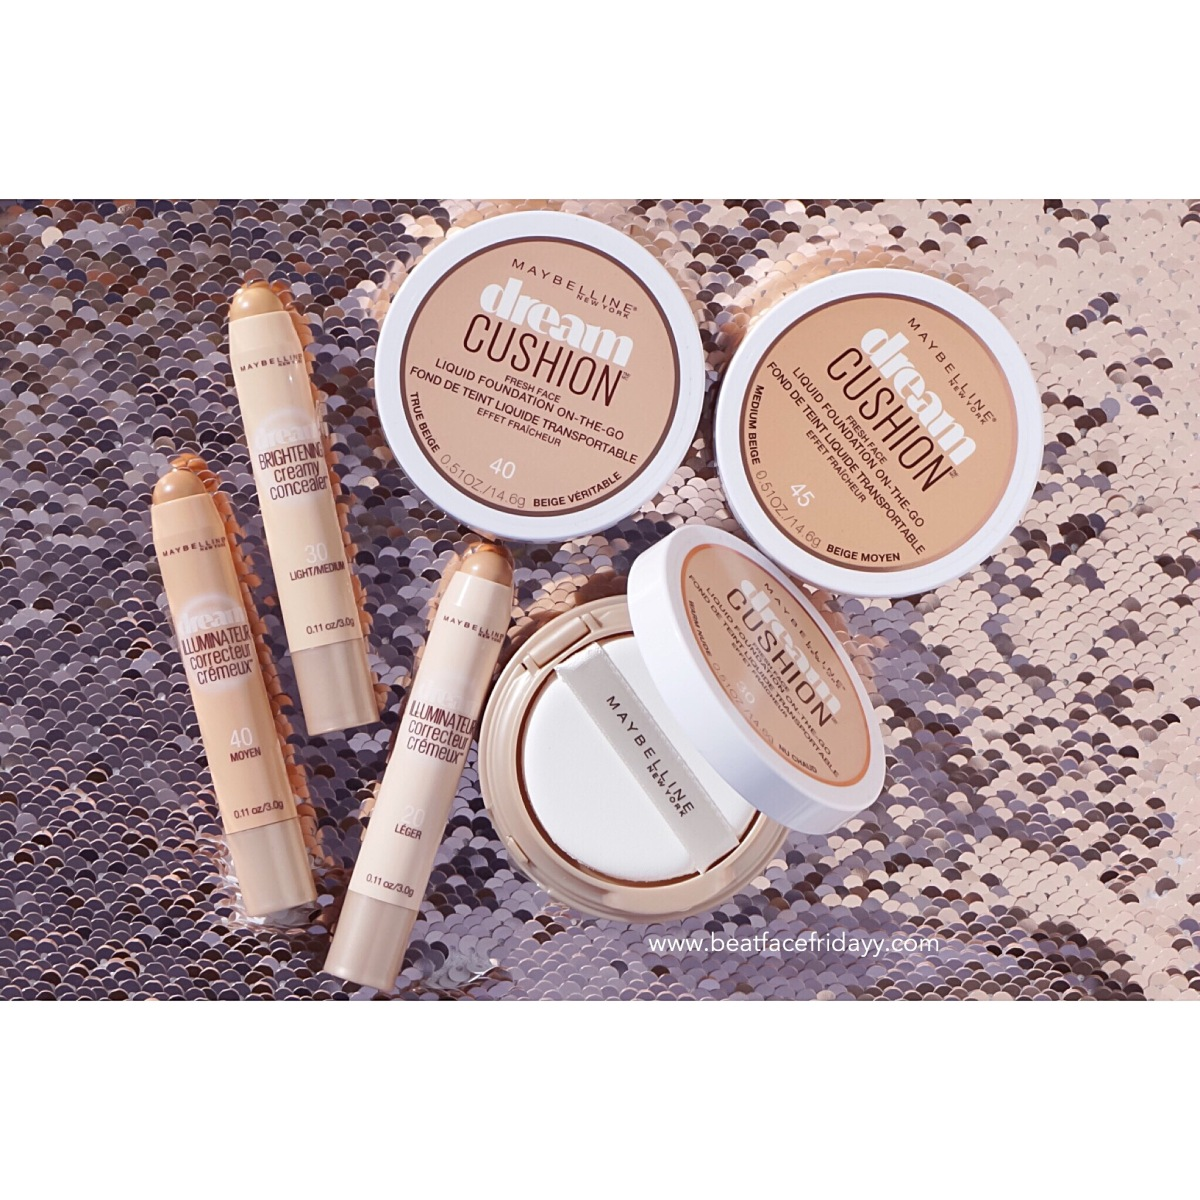 Maybelline Dream Cushion Foundation Porcelain, Ivory, Classic Ivory, Warm Nude, True Beige, Medium Beige, Caramel Swatch + Dream Brightening Creamy Concealer Fair, Light, Light/Medium, Medium, Medium/Deep, Deep Swatch + First Impressions